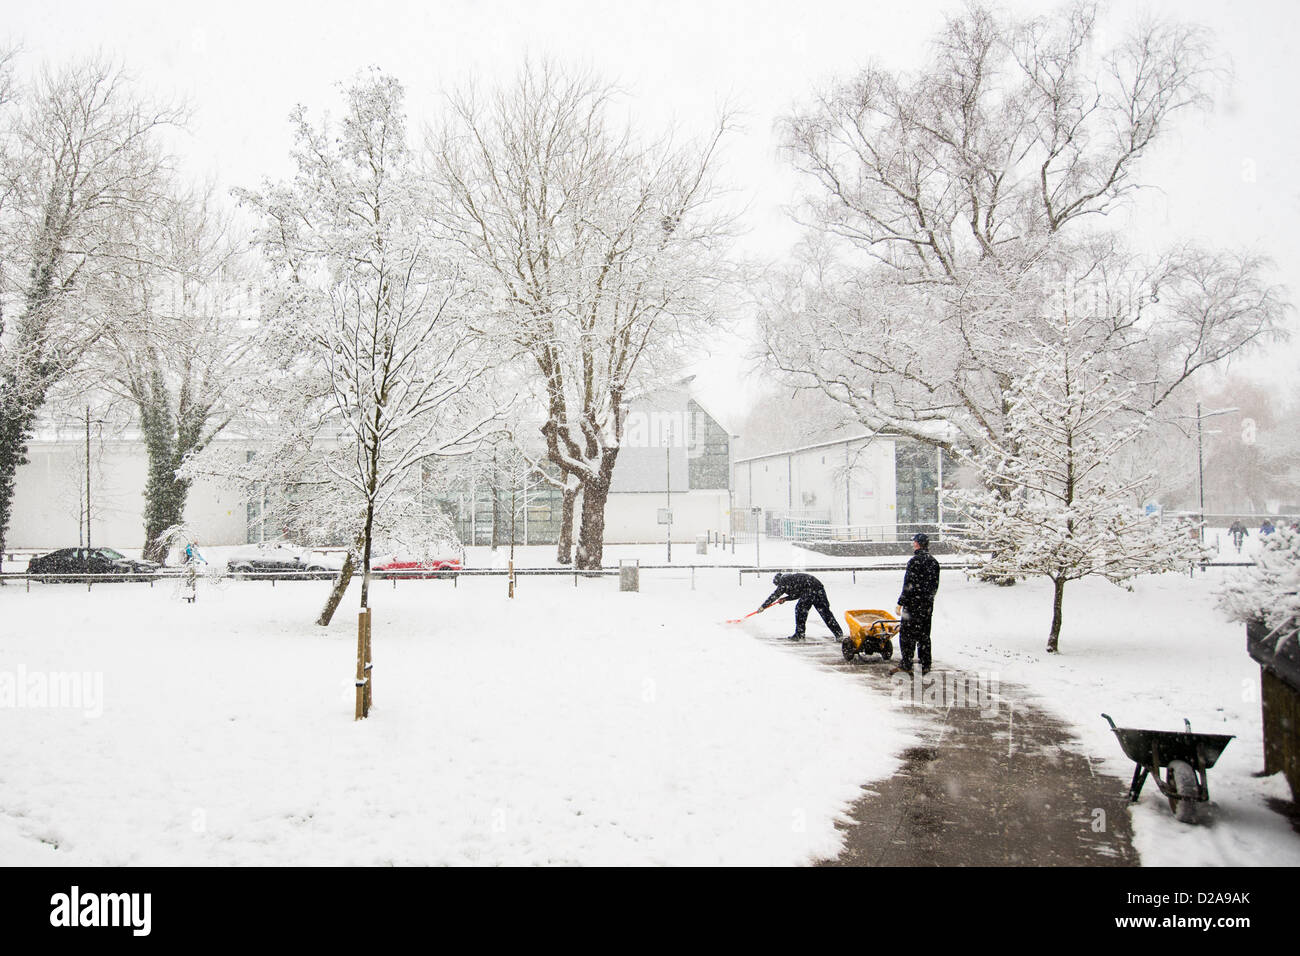 Winchester, UK. 18th January 2013. Pretty scenes result from heavy snowfall as cold weather continues in Winchester. - Stock Image